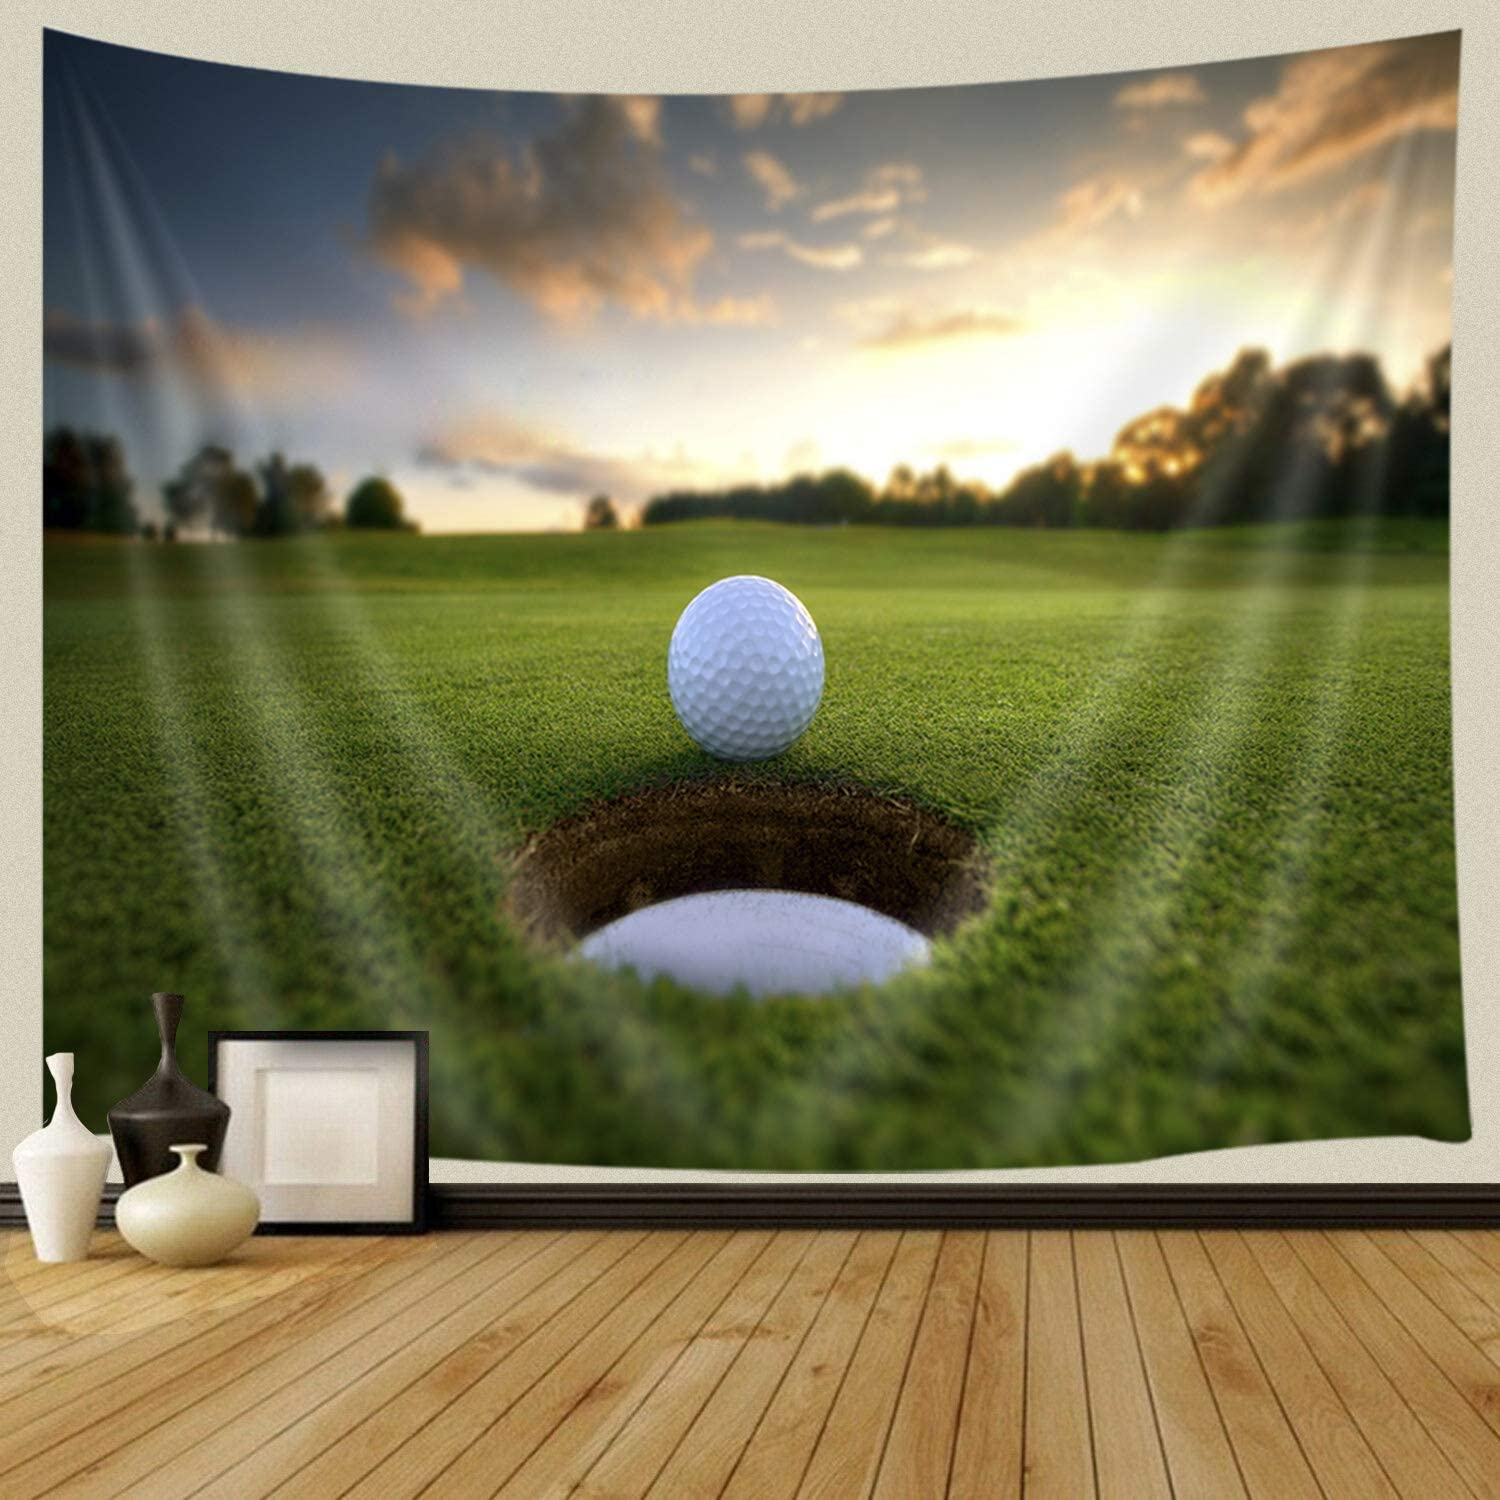 JAWO Golf Course Decor Tapestry for Men, Golf Ball Parked at Hole Farm  House Sunset Tapestries Wall Hanging for Dorm Living Room Bedroom, Wall  Blanket ...